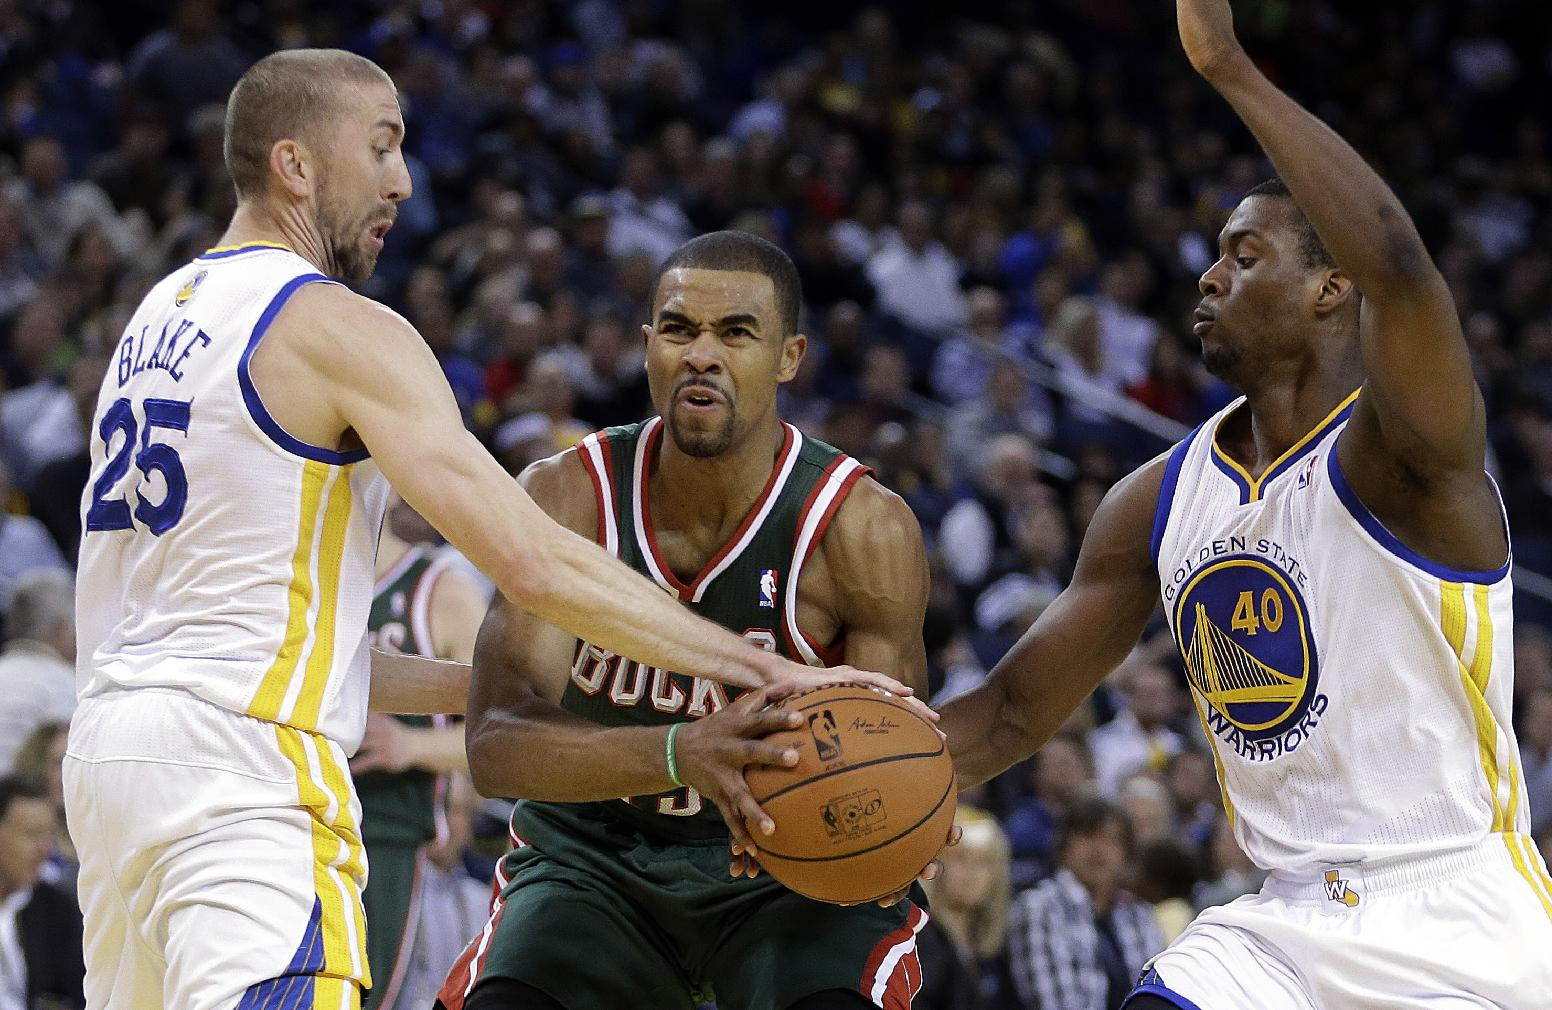 Warriors withstand scare to beat Bucks 115-110